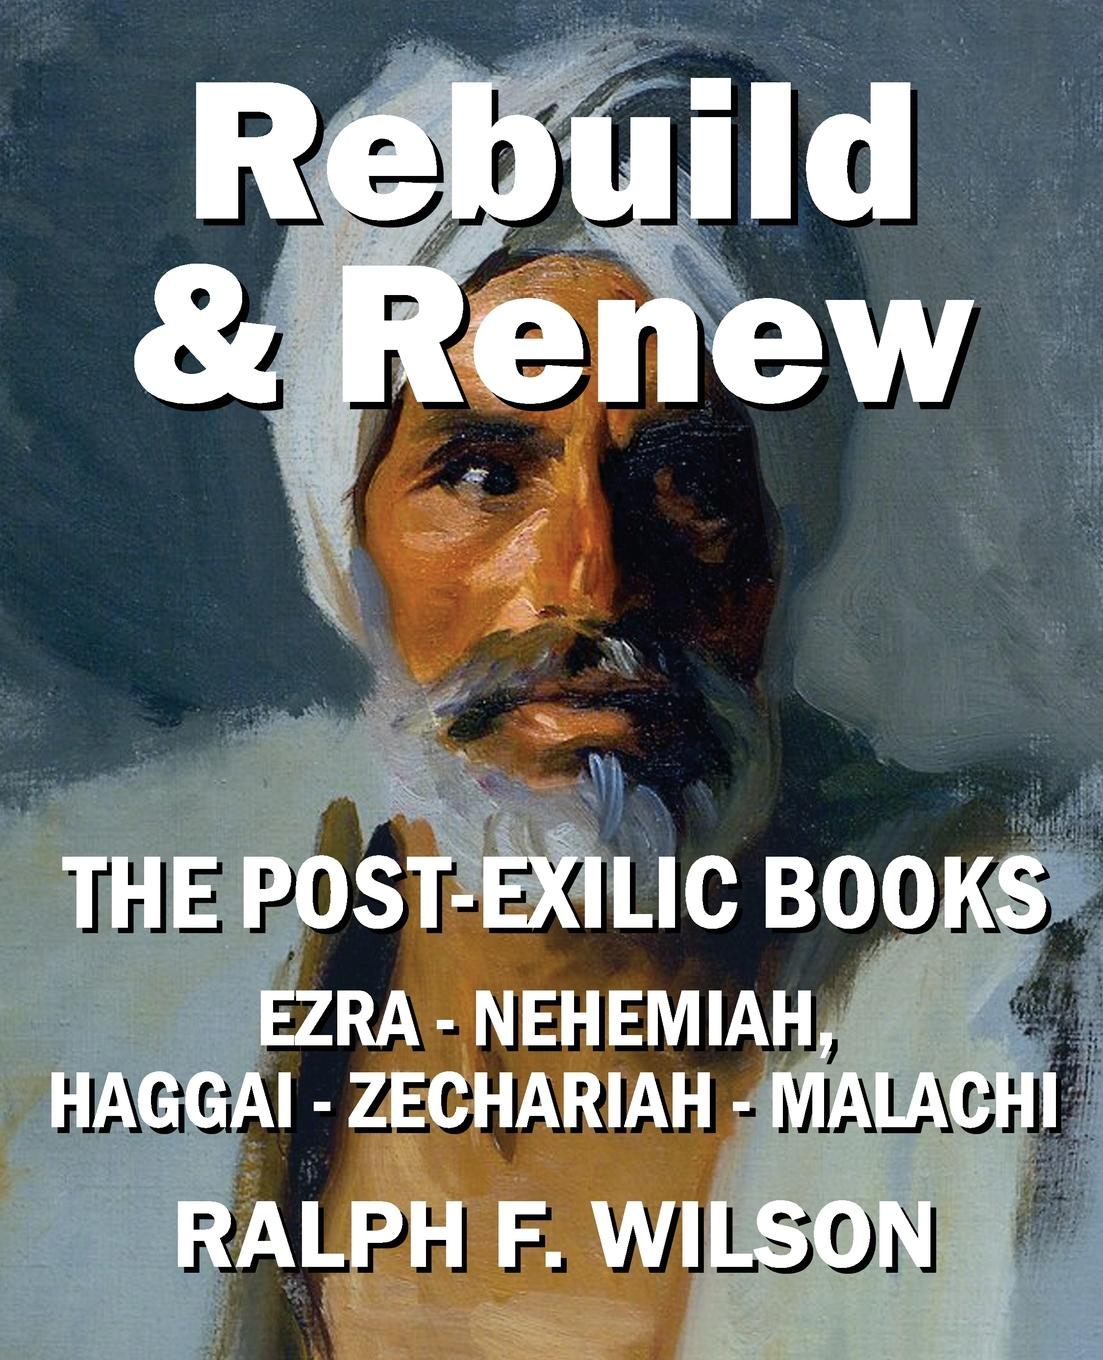 Ralph F. Wilson Rebuild and Renew. The Post-Exilic Books of Ezra, Nehemiah, Haggai, Zechariah, and Malachi mark j boda exploring zechariah volume 2 the development and role of biblical traditions in zechariah